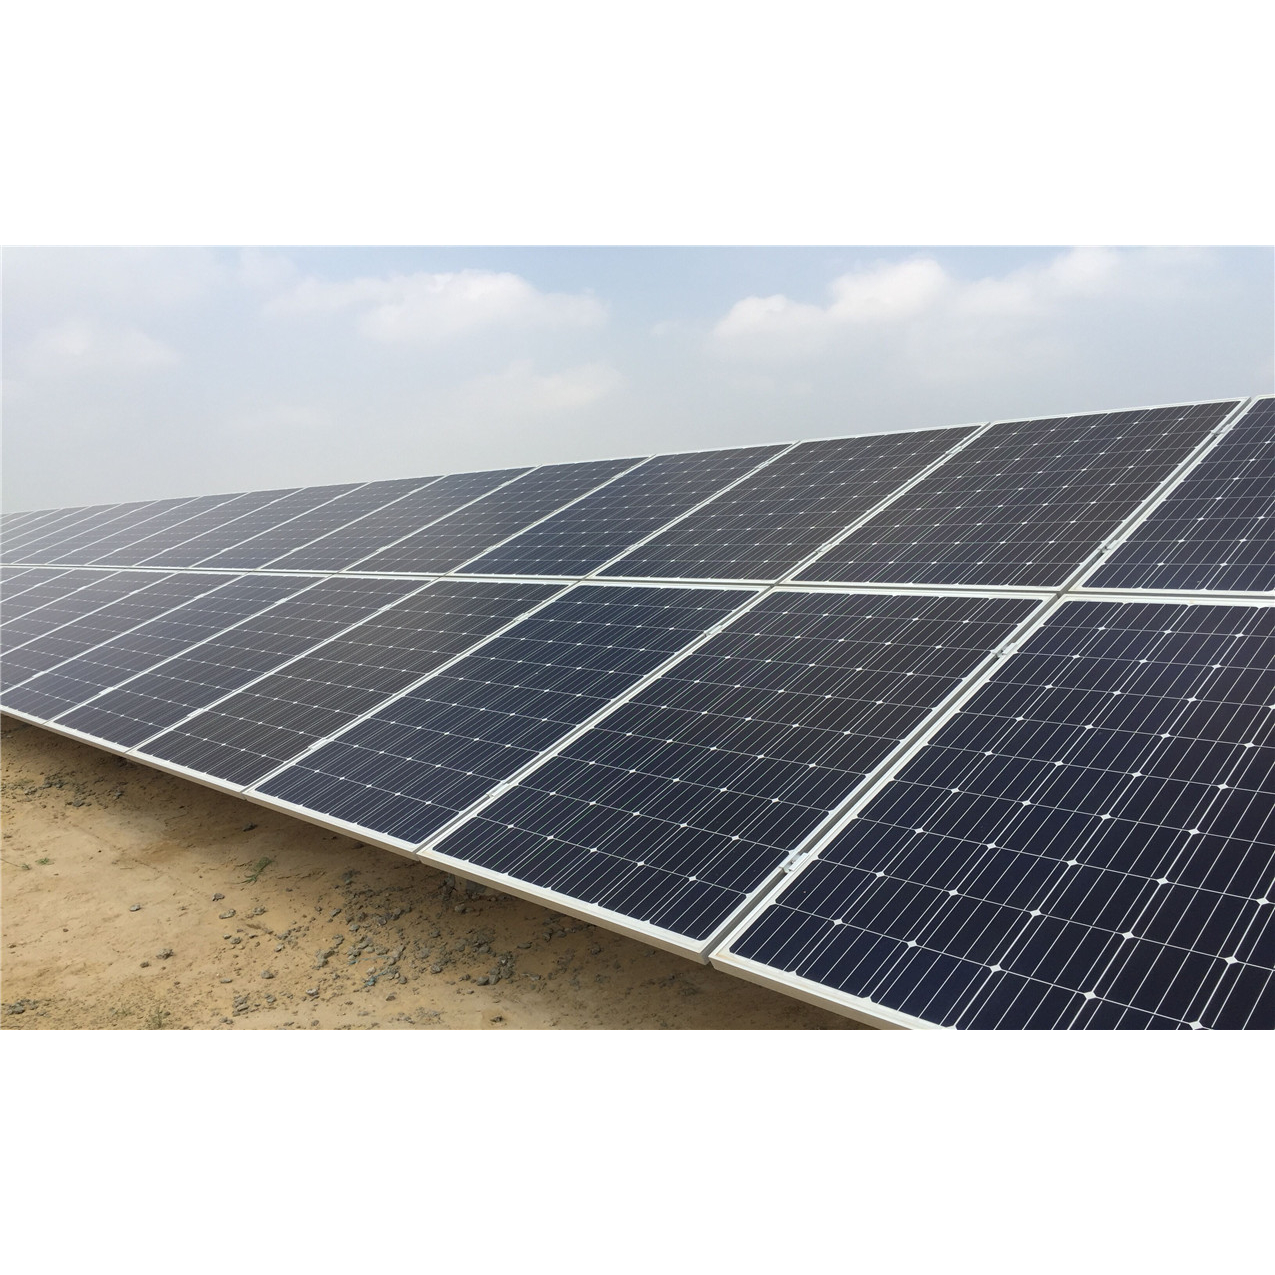 Longi 300w Lr6 60pb Solar Panel Is Available Online At A